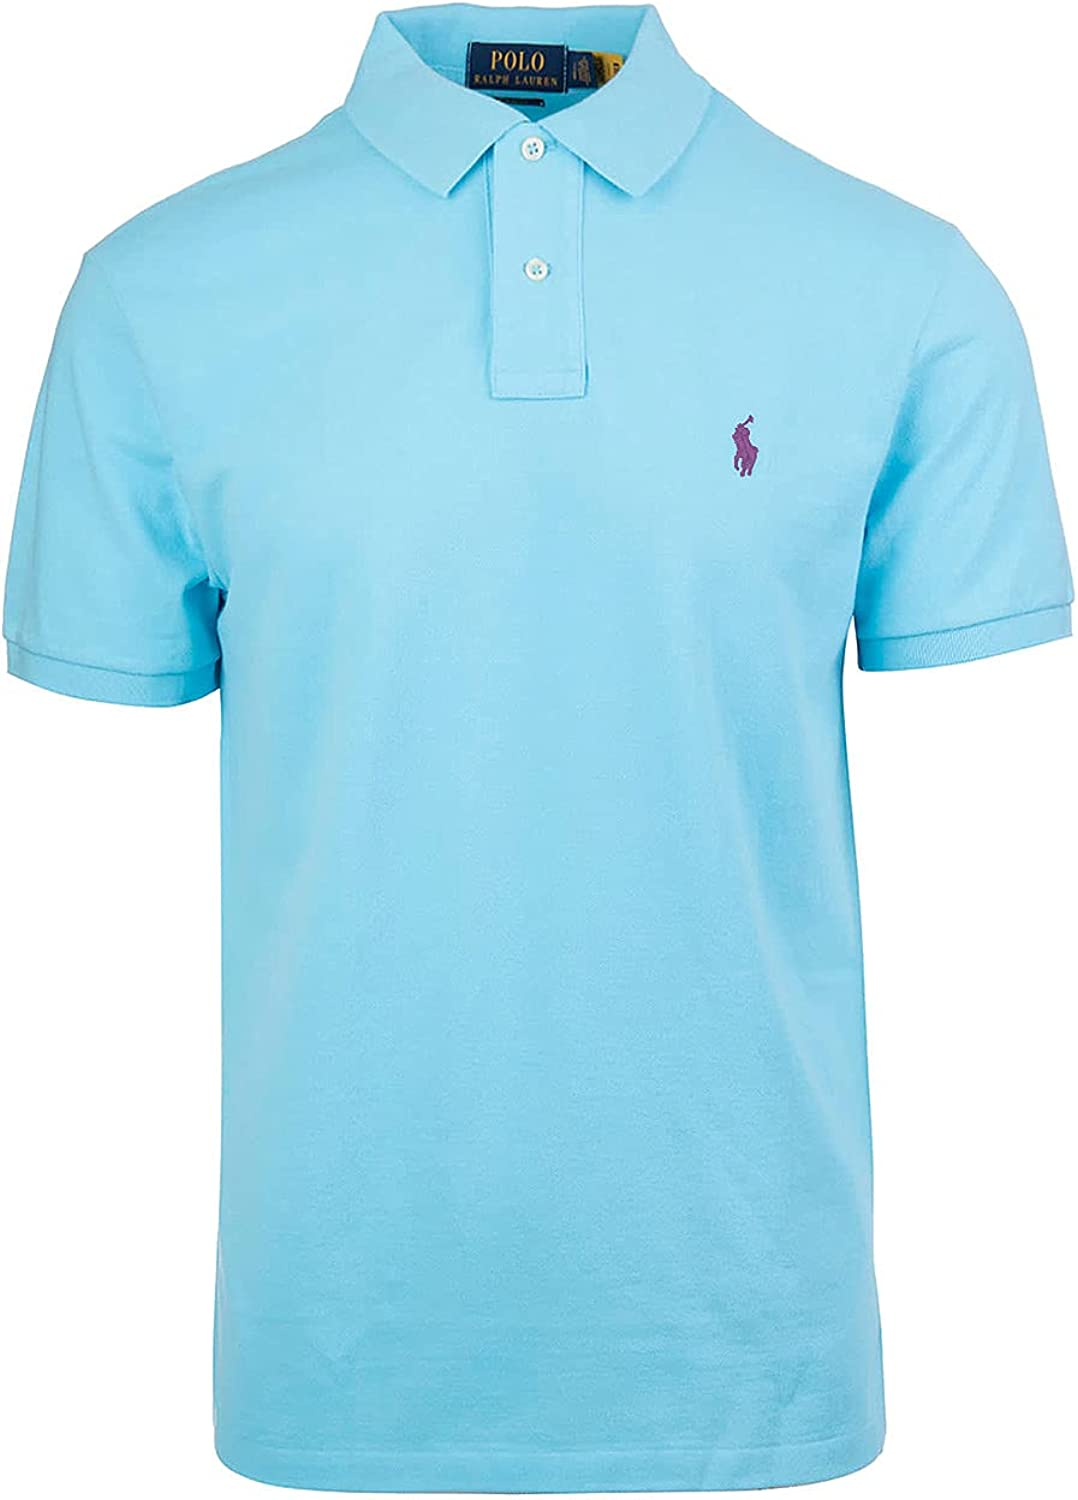 Polo Ralph Lauren Mens French Turquoise Soft Cotton Polo Shirt